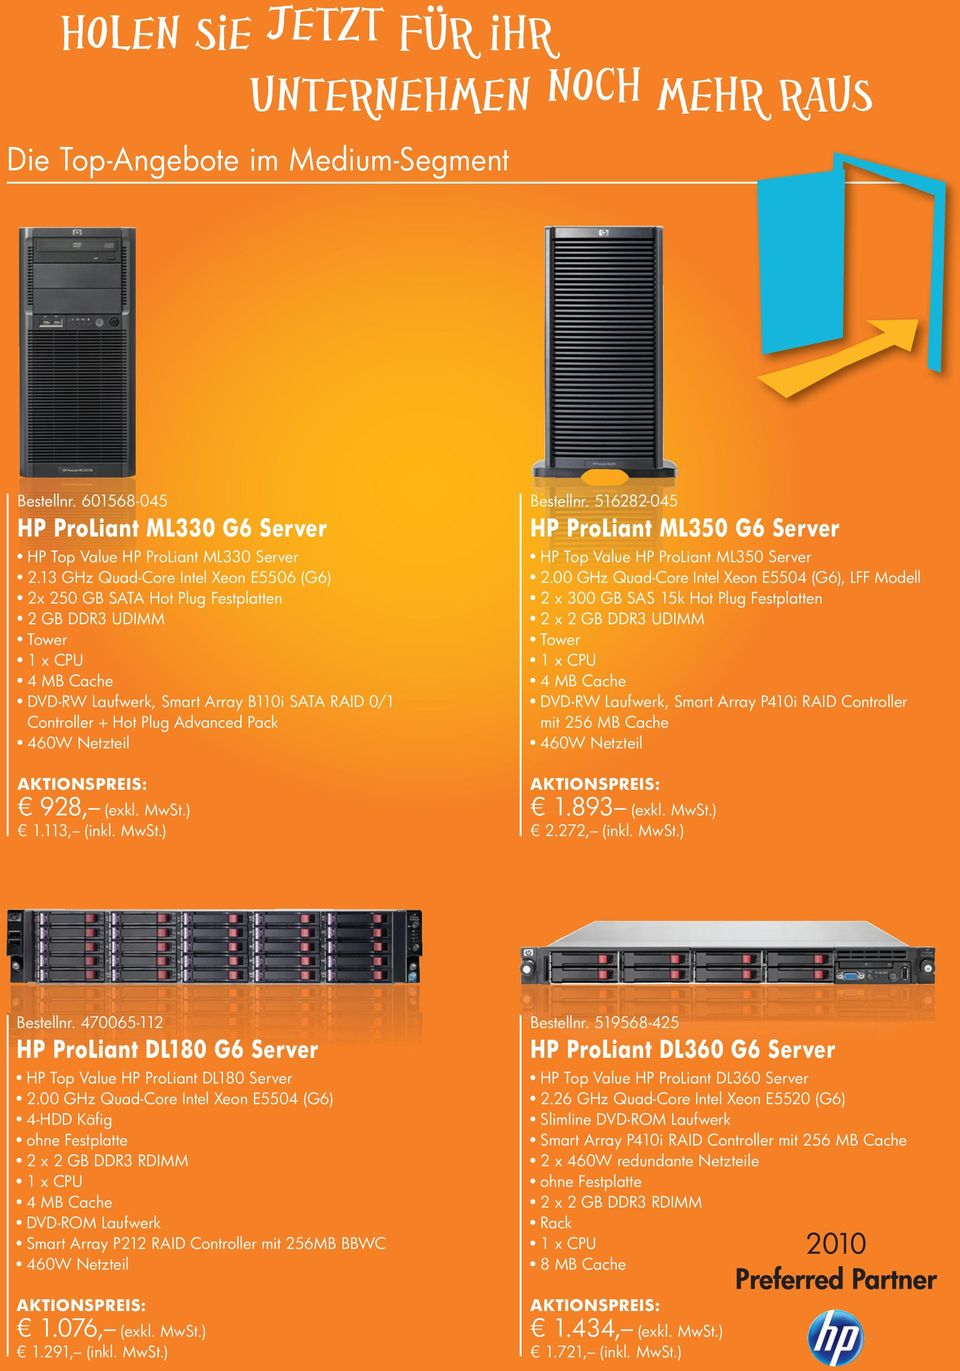 ) 1.113, (inkl. MwSt.) Bestellnr. 516282-045 HP ProLiant ML350 G6 Server HP Top Value HP ProLiant ML350 Server 2.